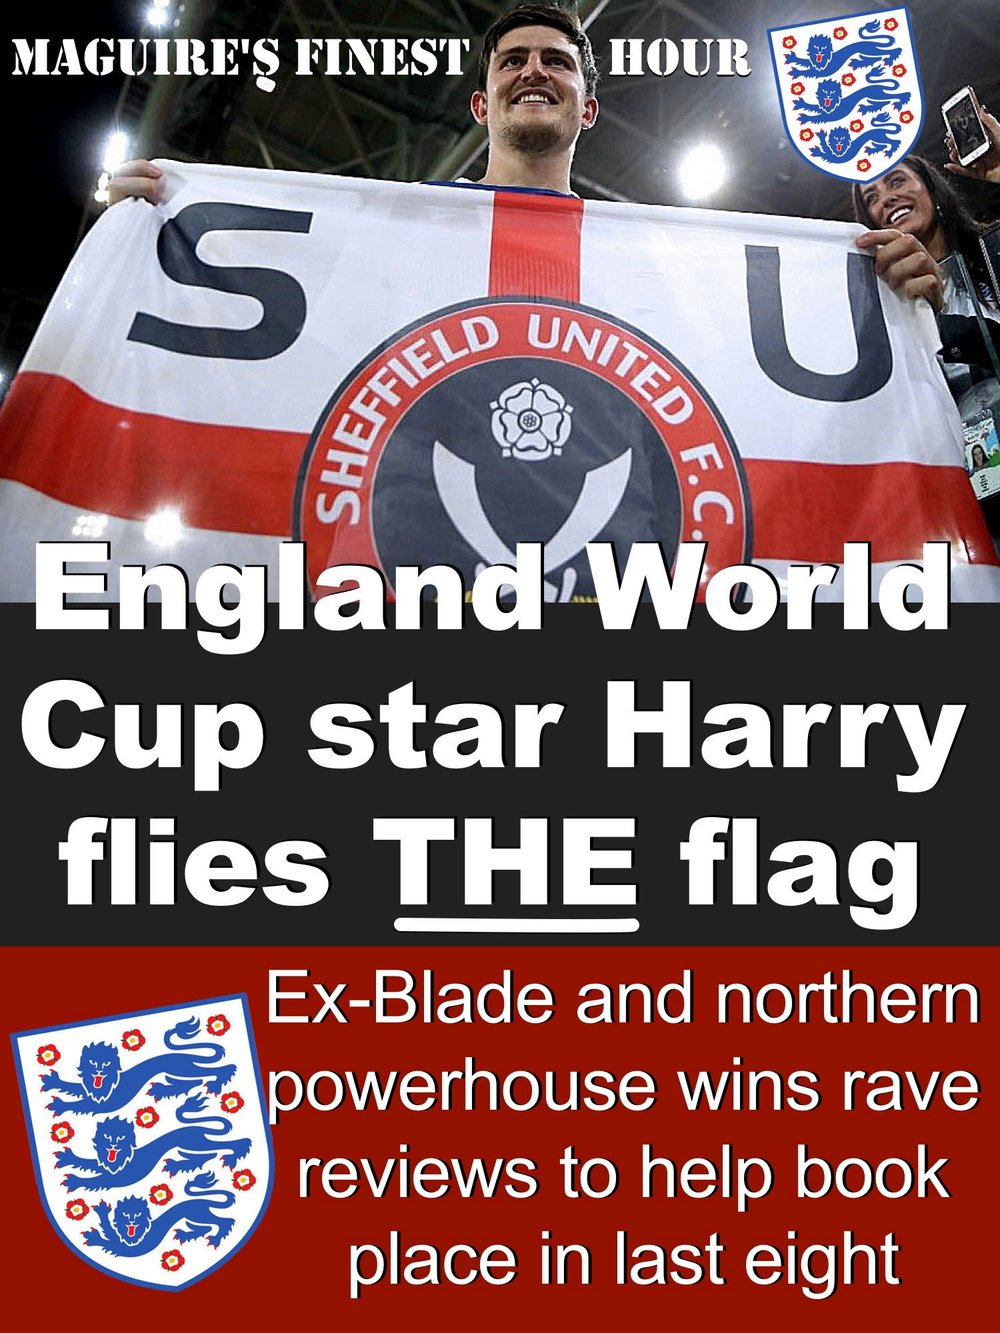 Former Sheffield United defender flew the Blades flag in Moscow after starring in England's victory against Columbia which booked their place in the World Cup quarter-finals.